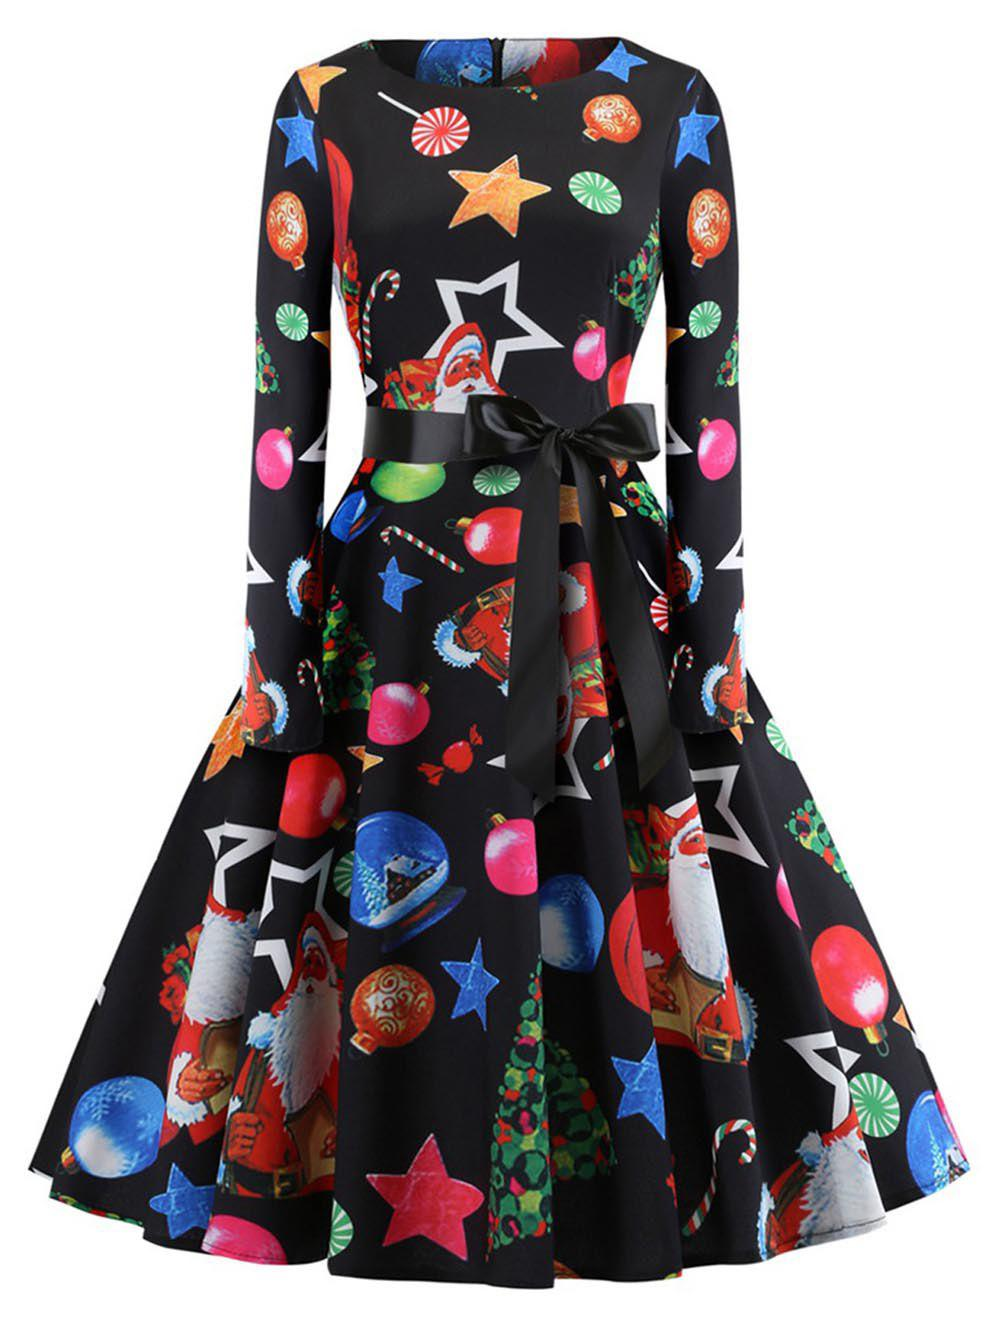 54864a91b9 Hepburn Vintage Series Women Dress Spring And Summer Round Neck Christmas  Printing Design Long Sleeve Belt Corset Dress - S